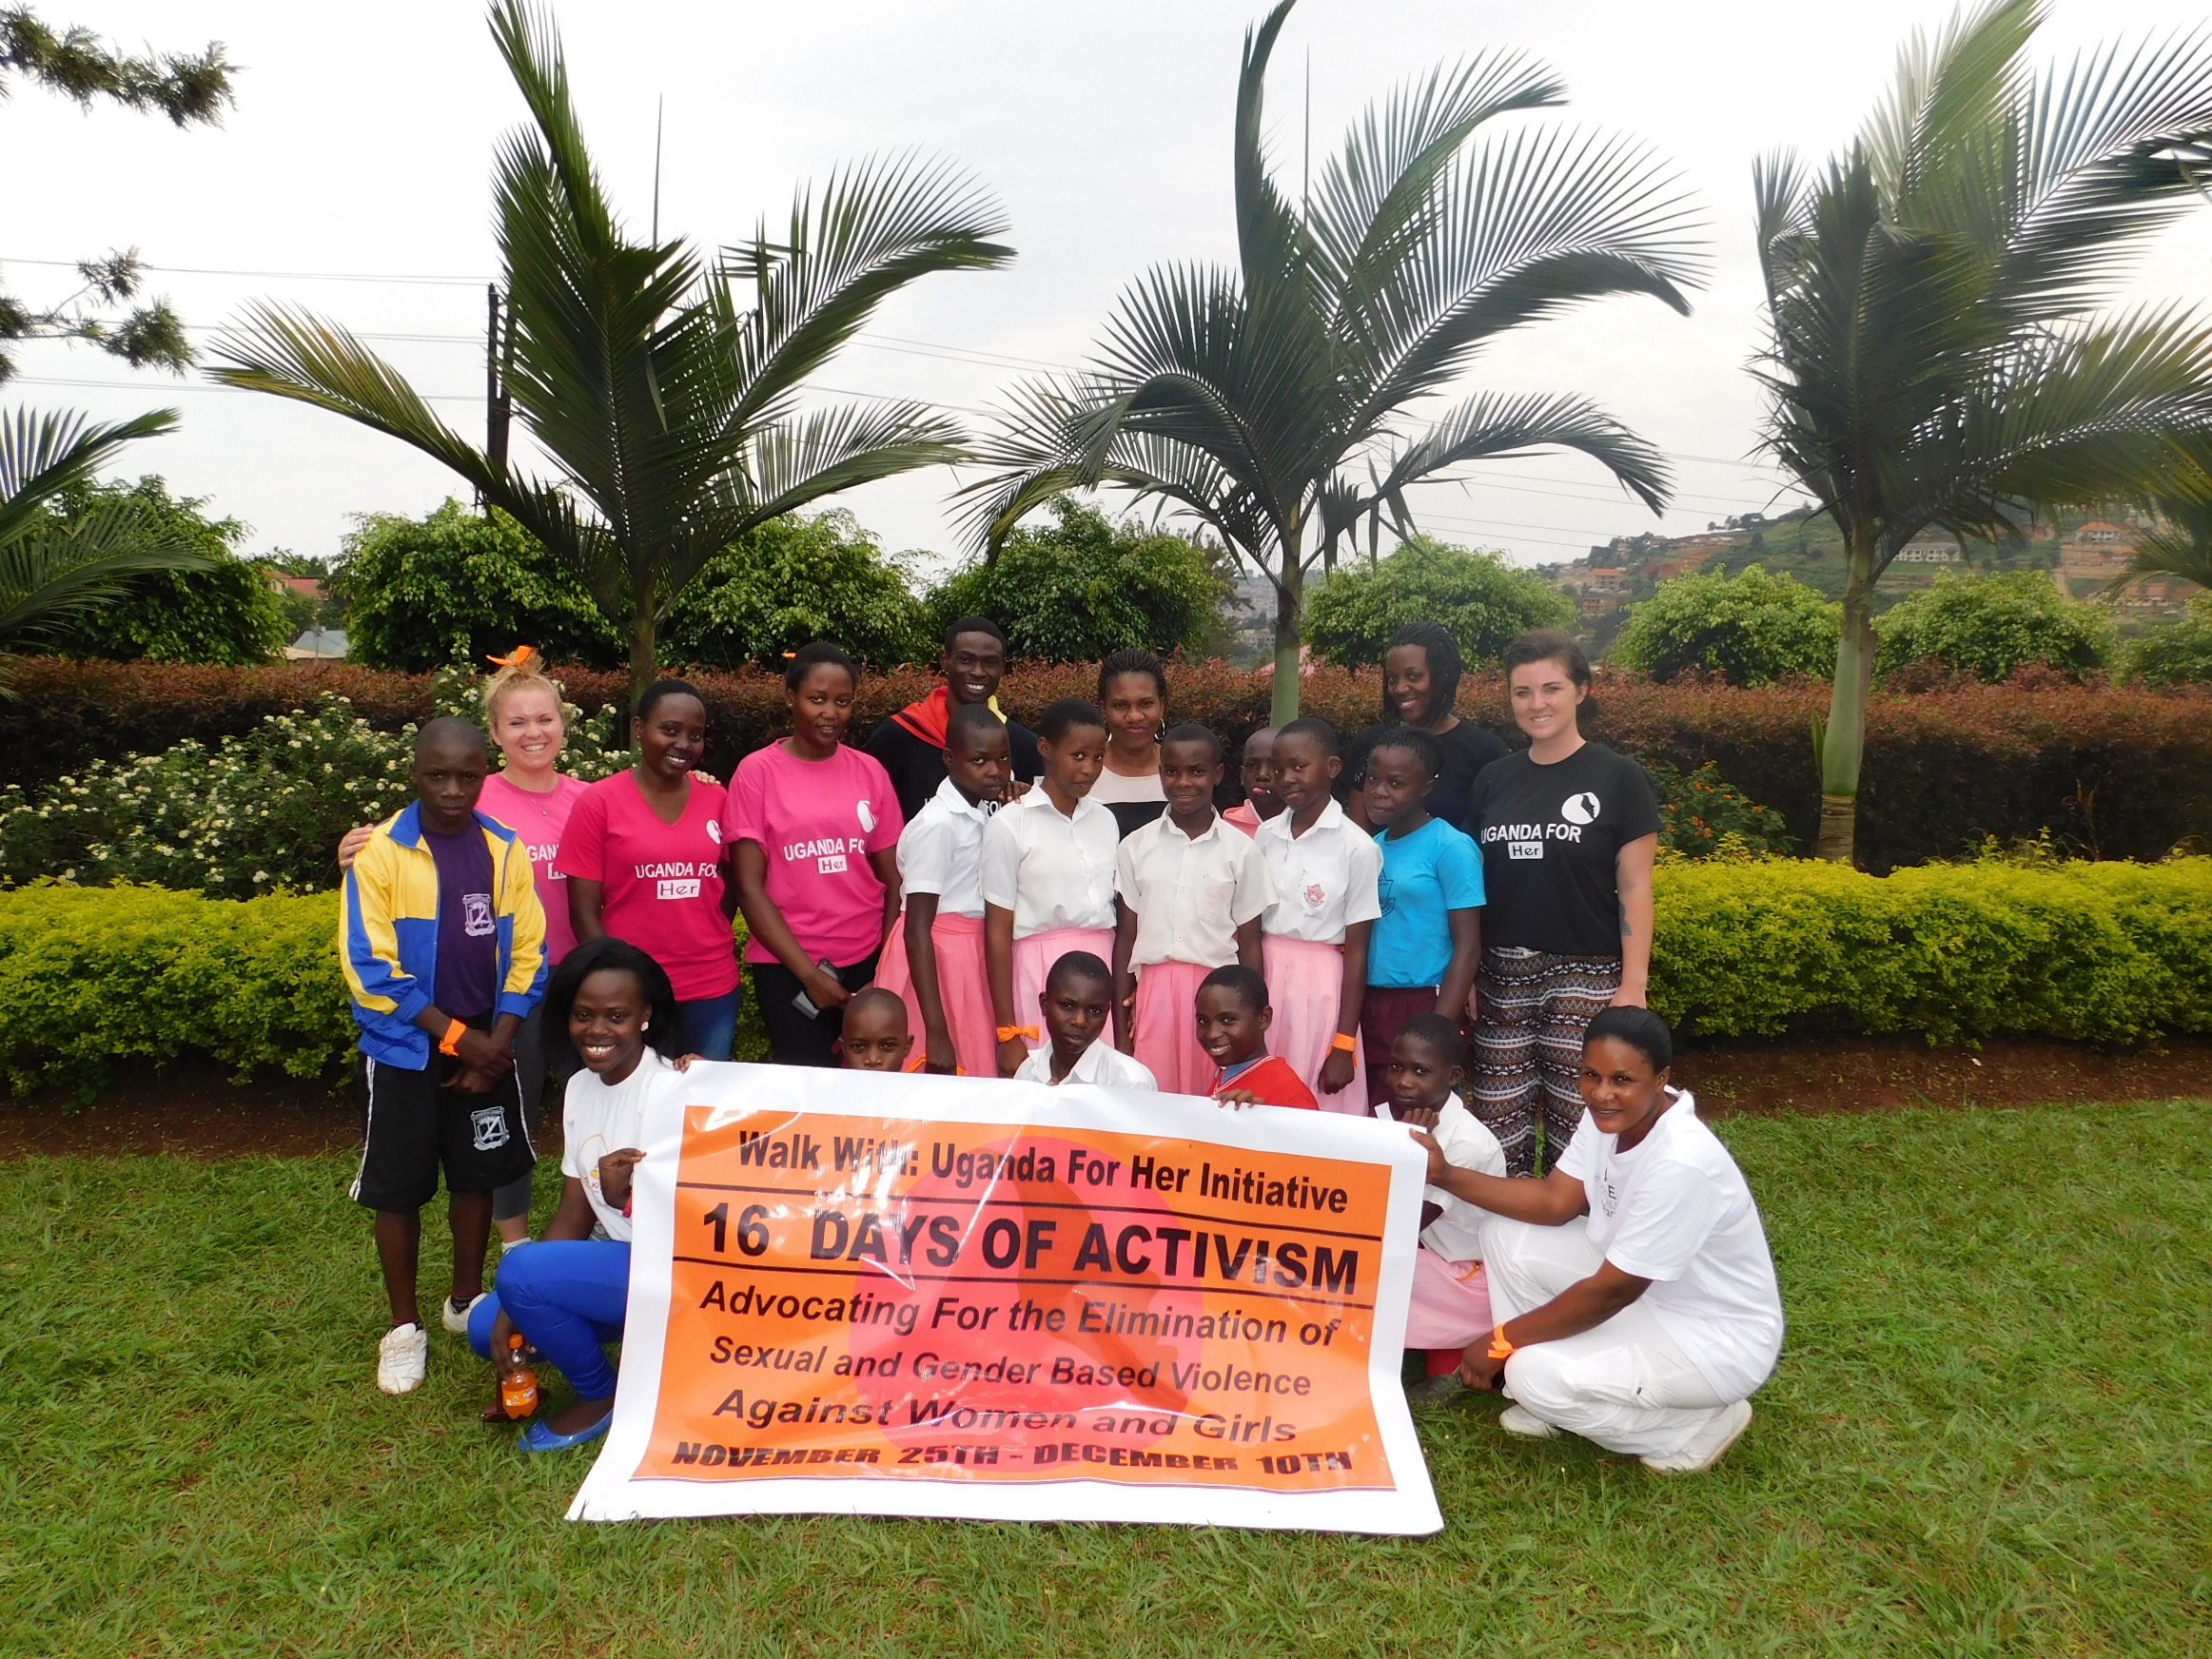 16 Days of Activism: Protest Walk Hosted by Uganda For Her